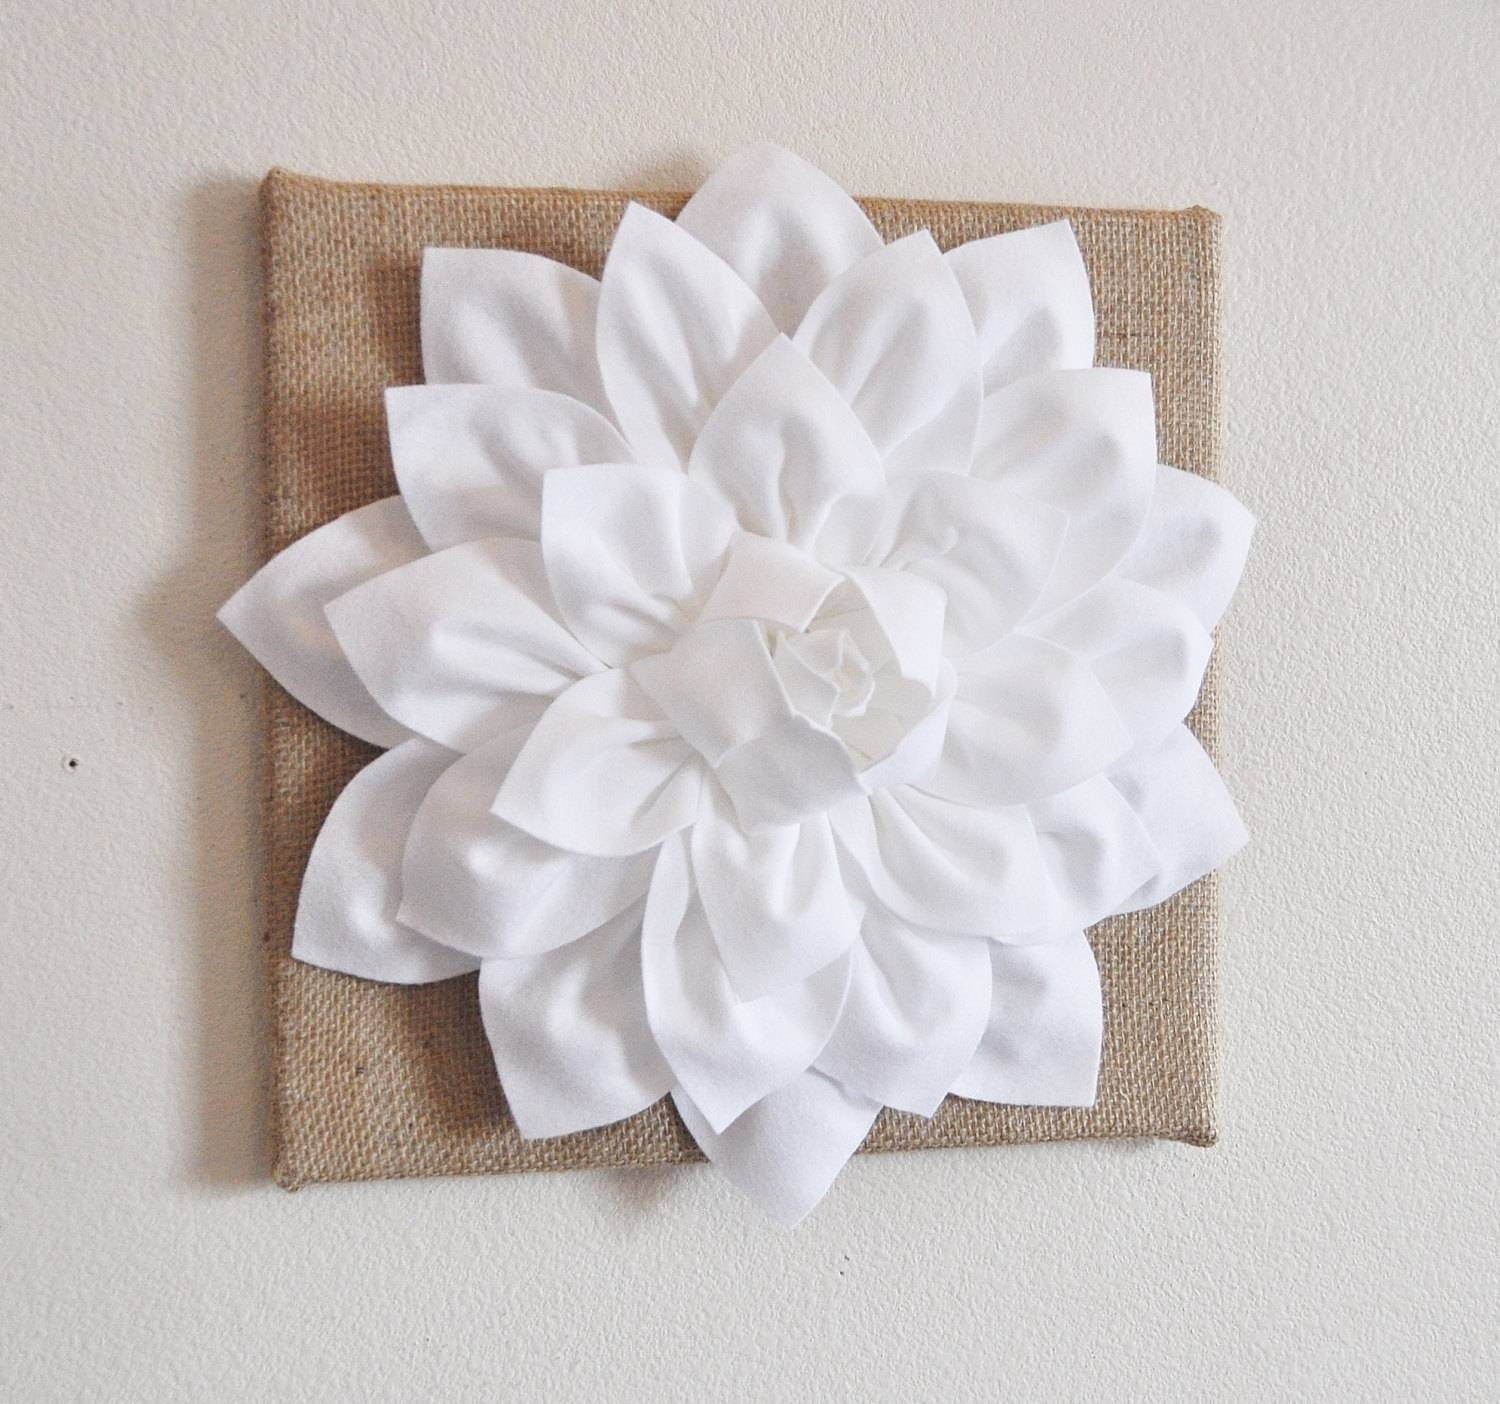 Wall Flower White Dahlia On Burlap 12 X12 Canvas Wall Pertaining To Most Current 3D Flower Wall Art (View 19 of 20)